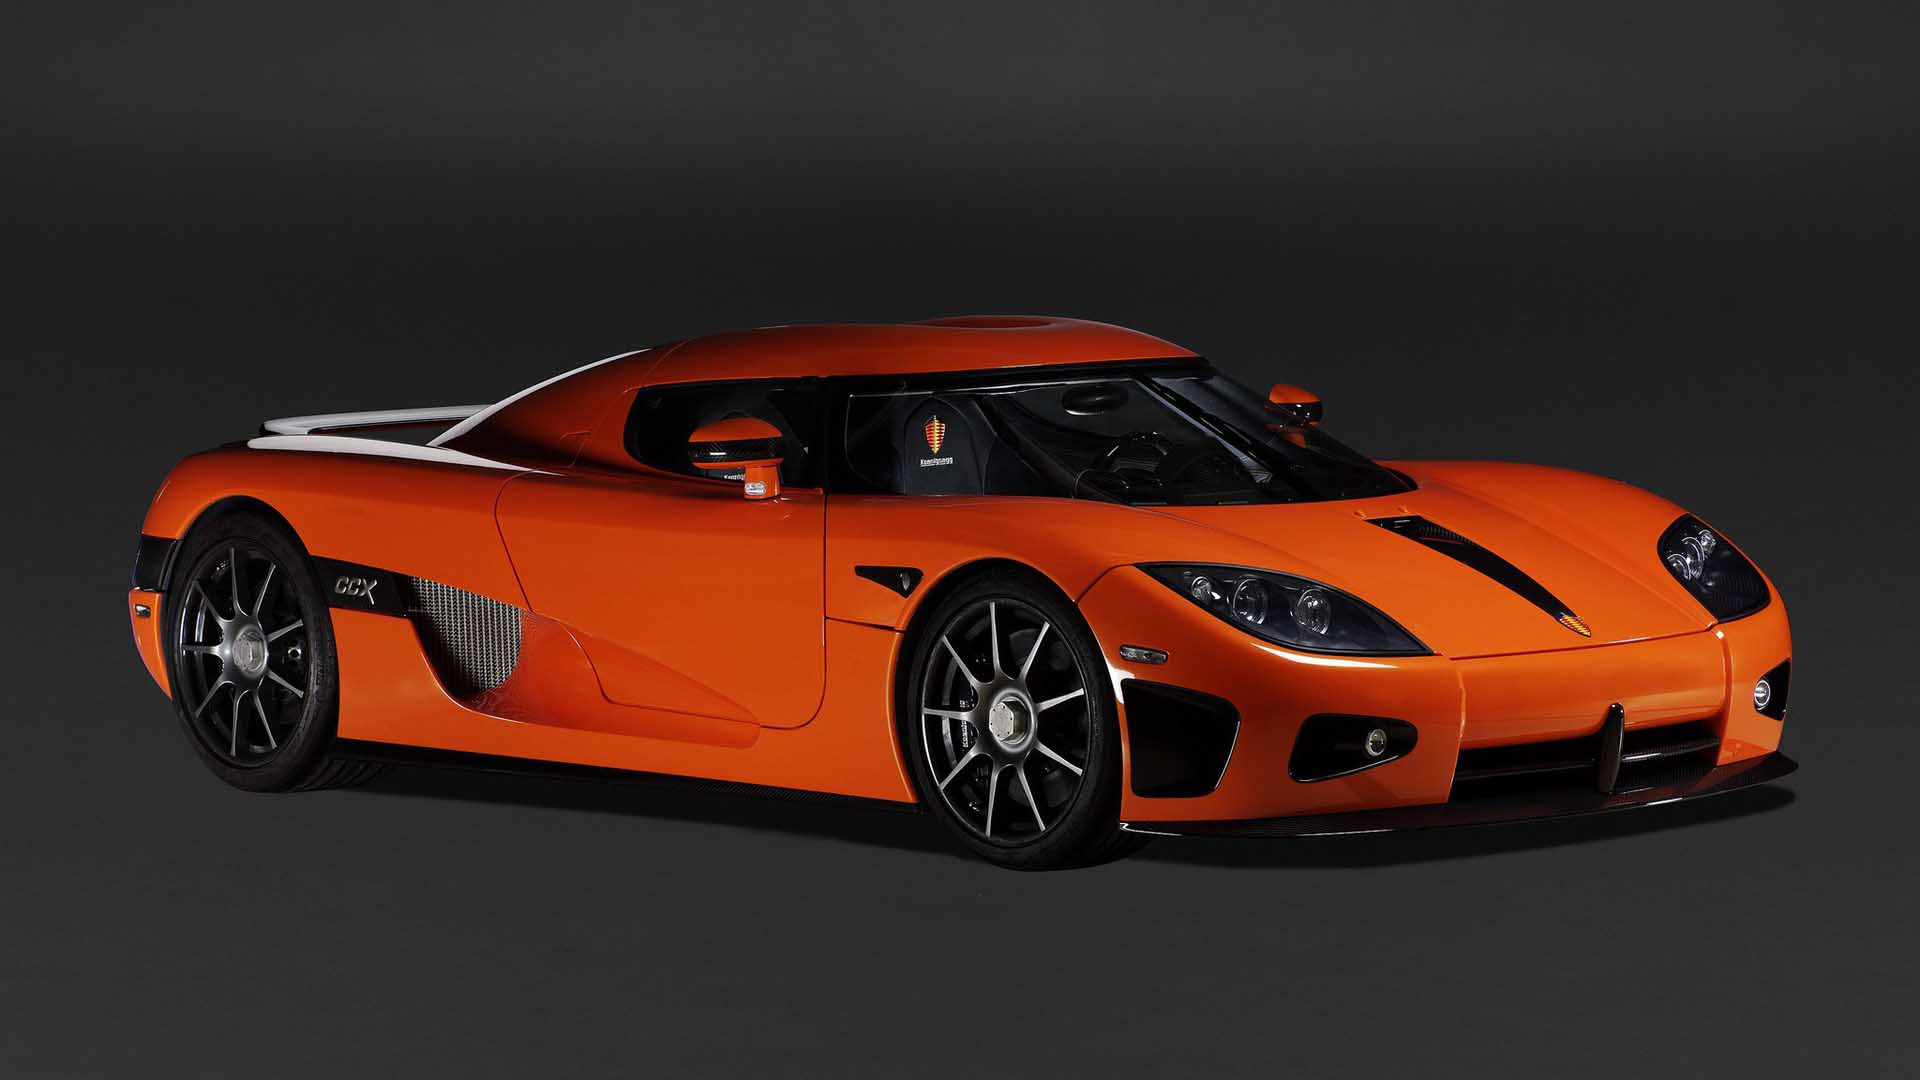 Koenigsegg Exotic Super Car Wallpapers   Original Preview   PIC 1275 1920x1080